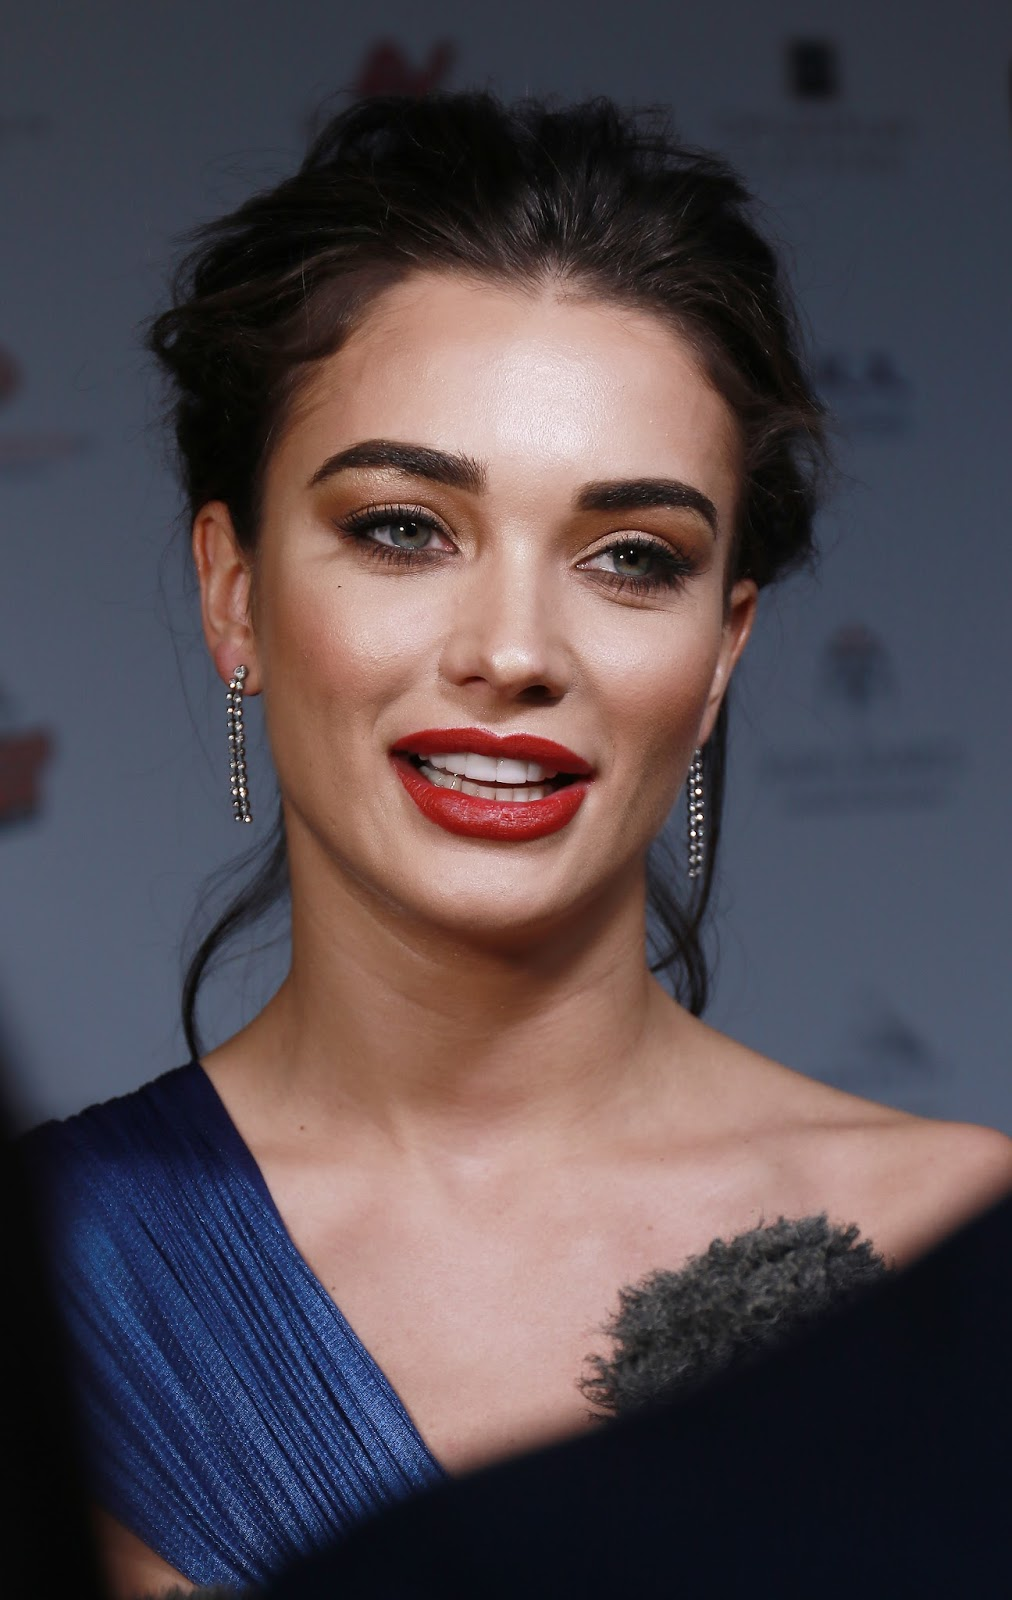 Amy Jackson nudes (14 photo) Hacked, Instagram, panties